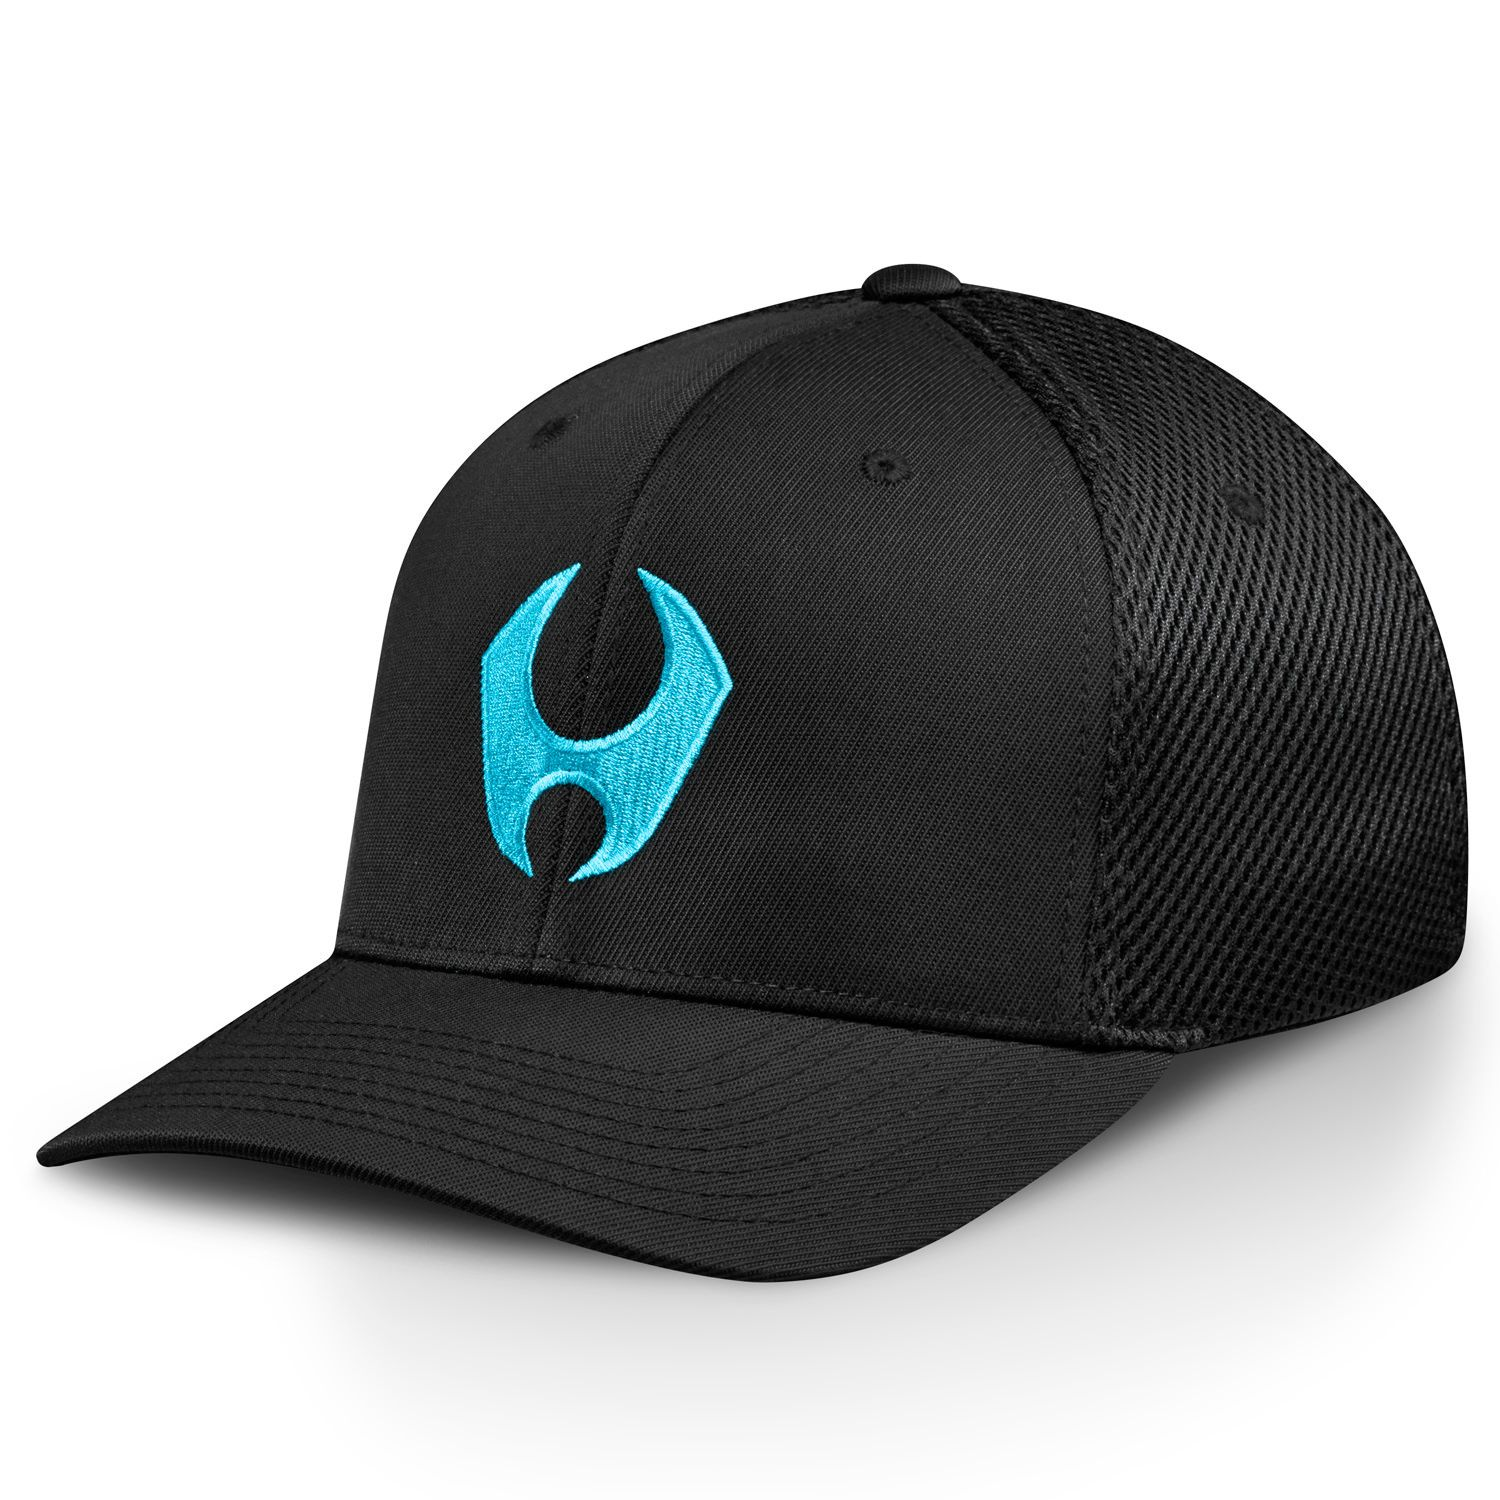 HYLETE icon flexfit cap black/electric blue Hats for